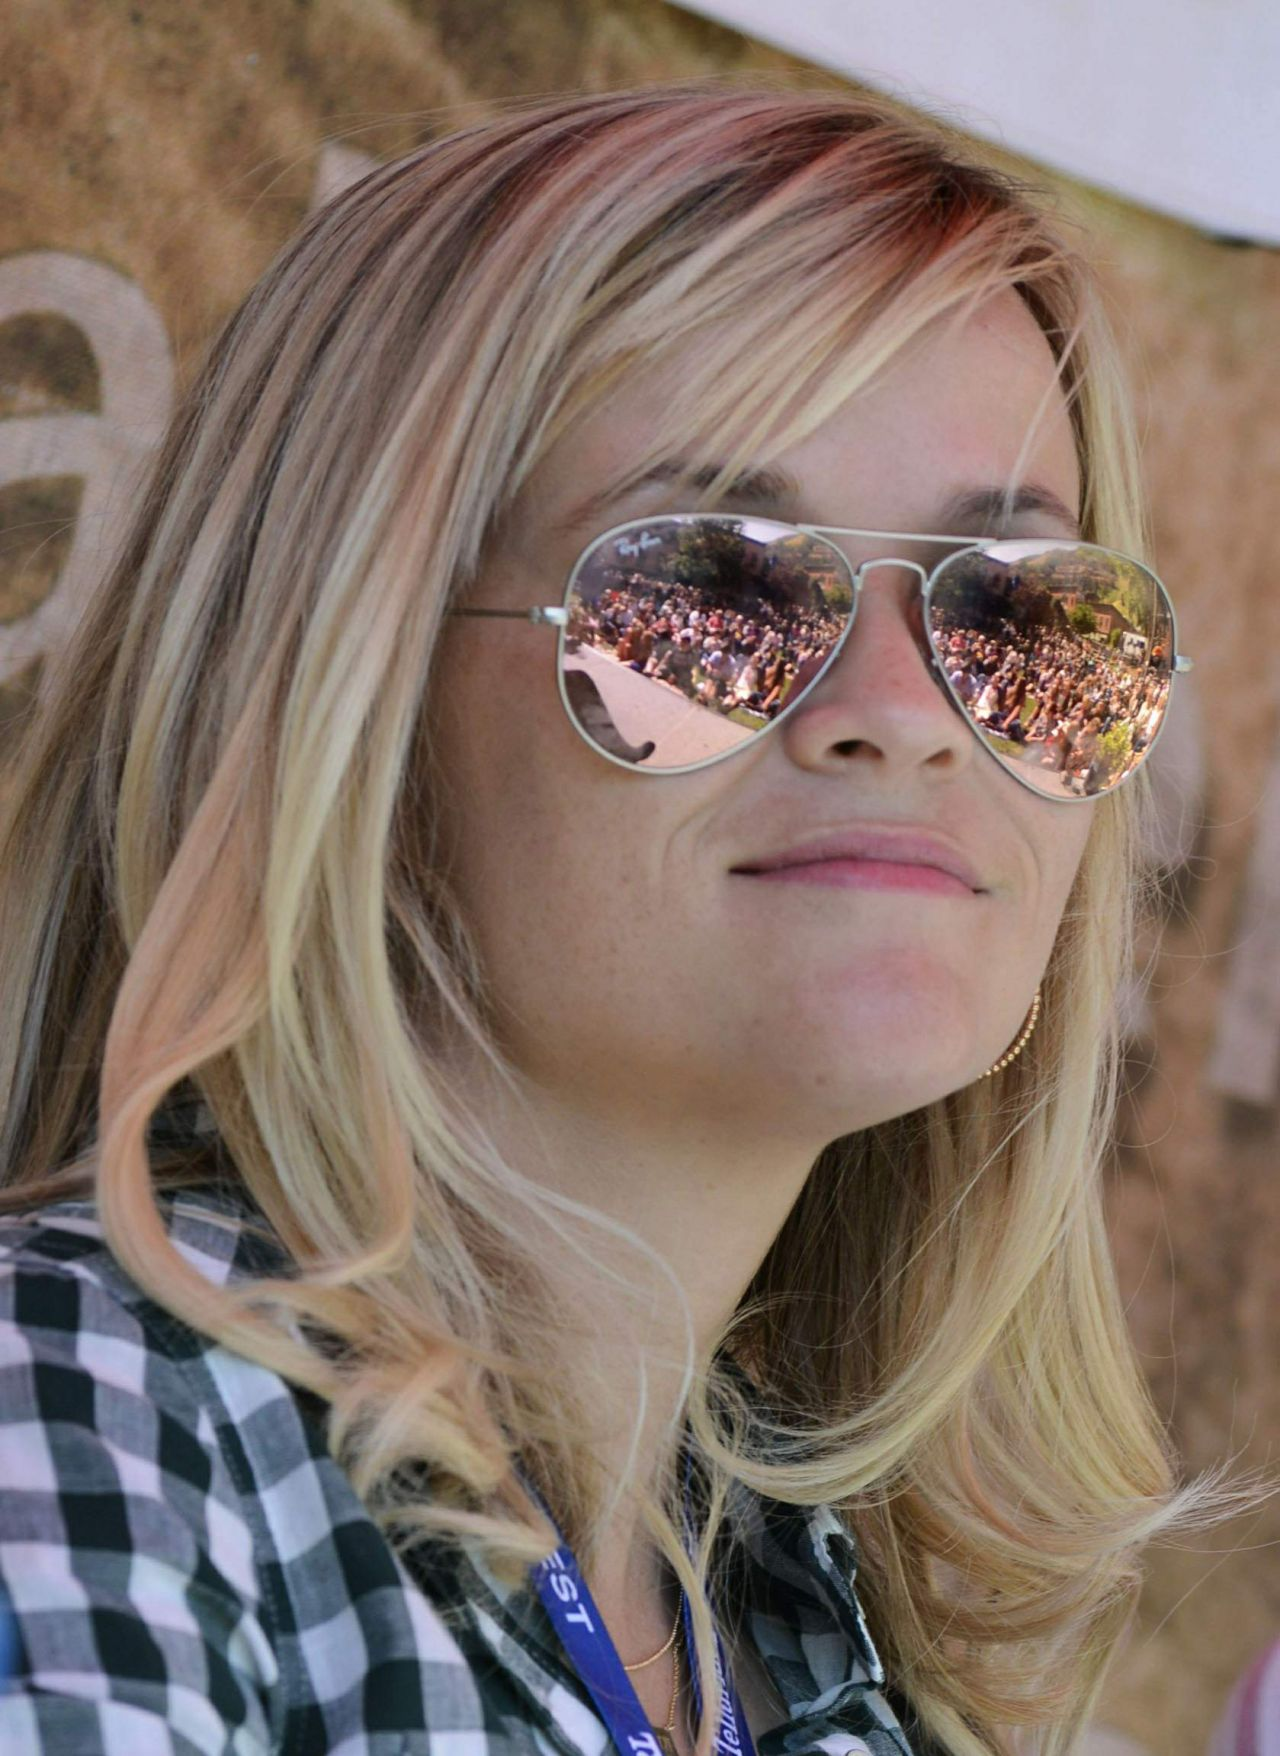 Reese Witherspoon At Elks Park At The 2014 Telluride Film